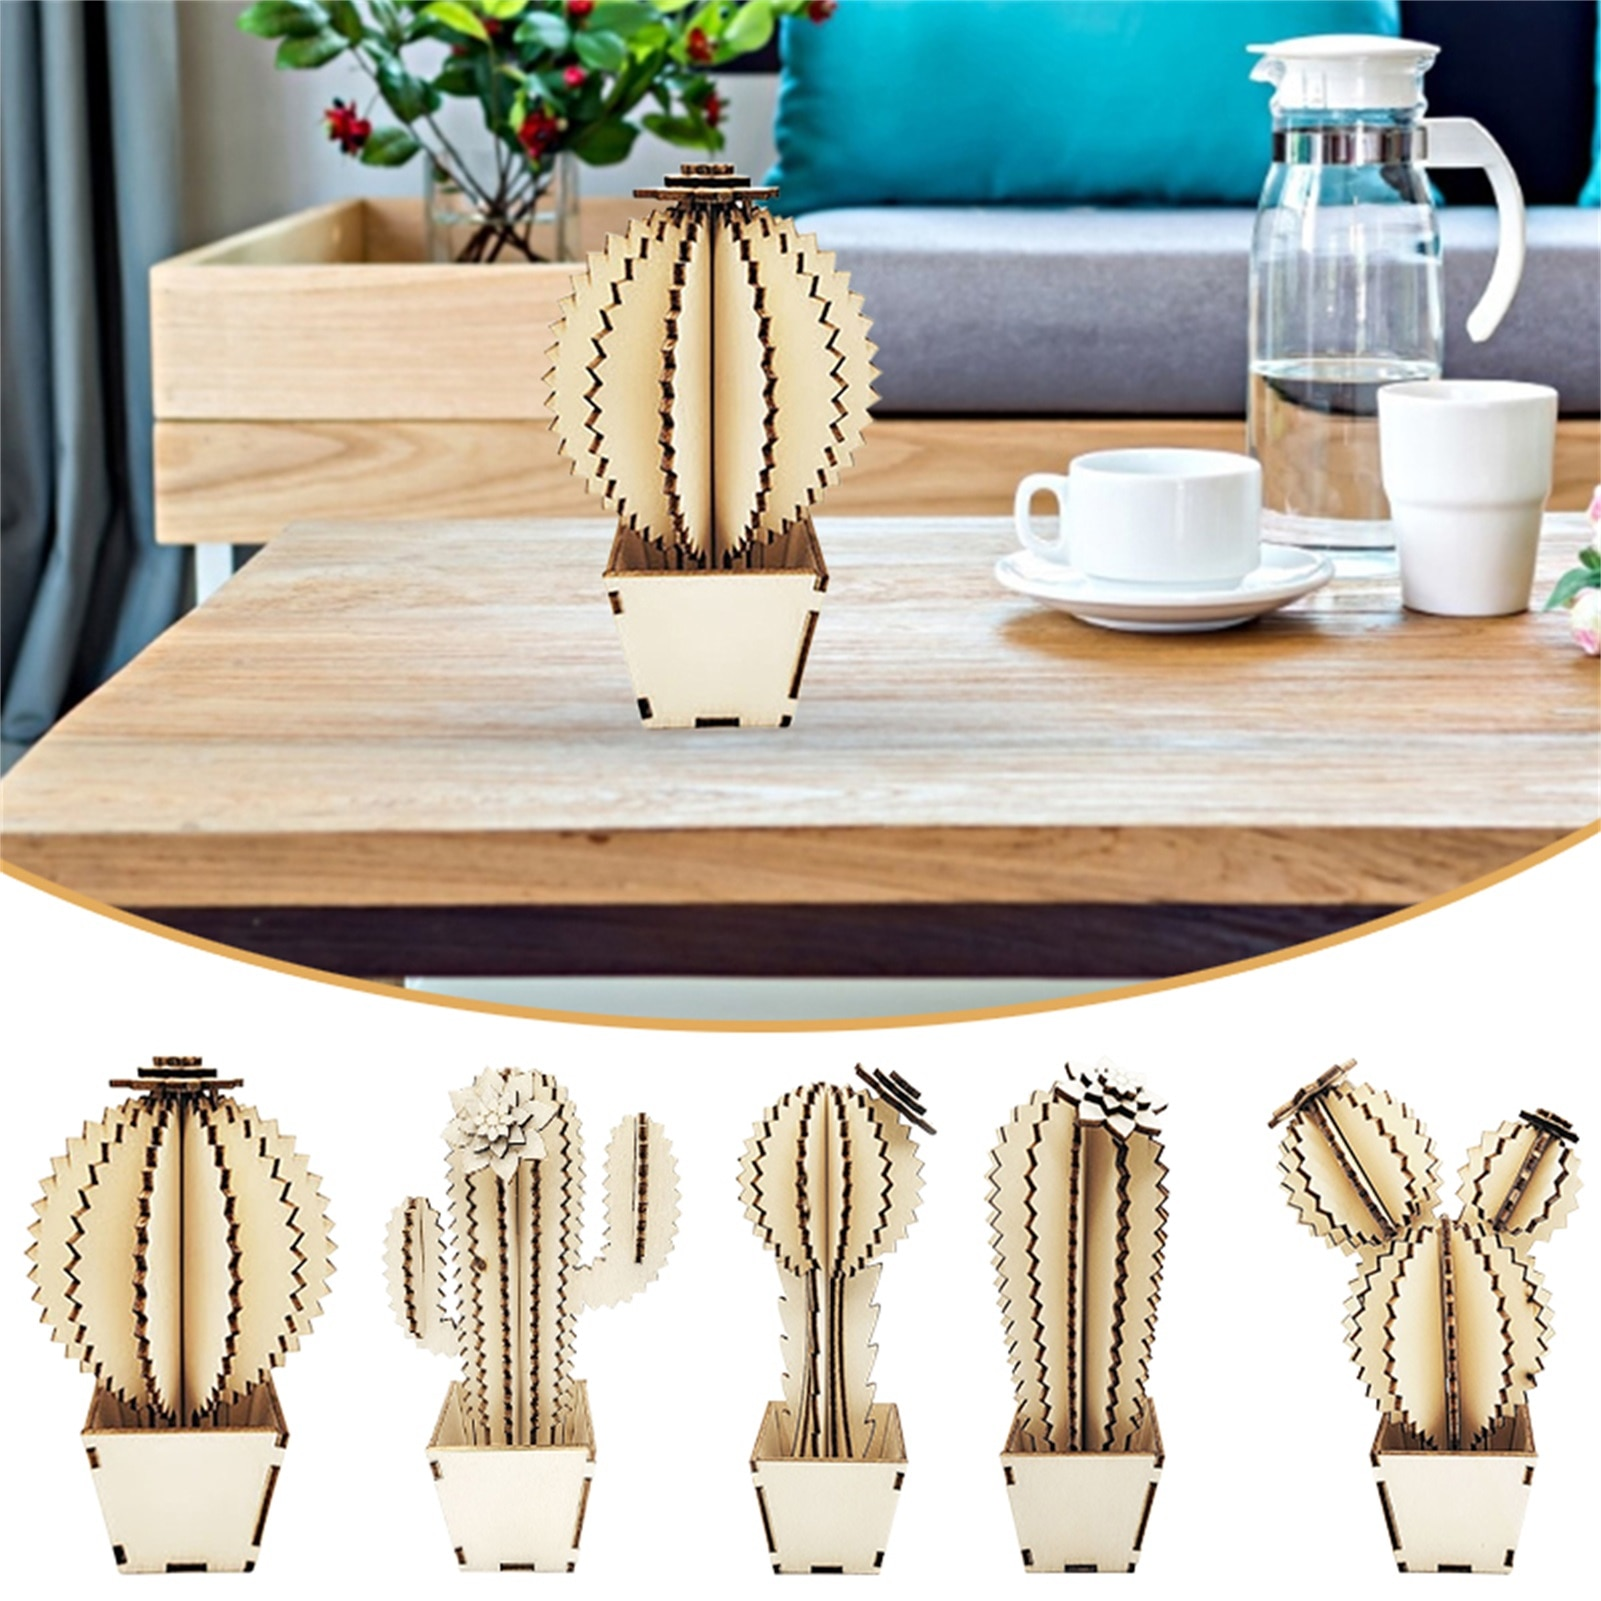 New Creative Wooden Decoration Laser Hollow Cactus DIY Fun Assembling Home Furnishing Small Fresh Party